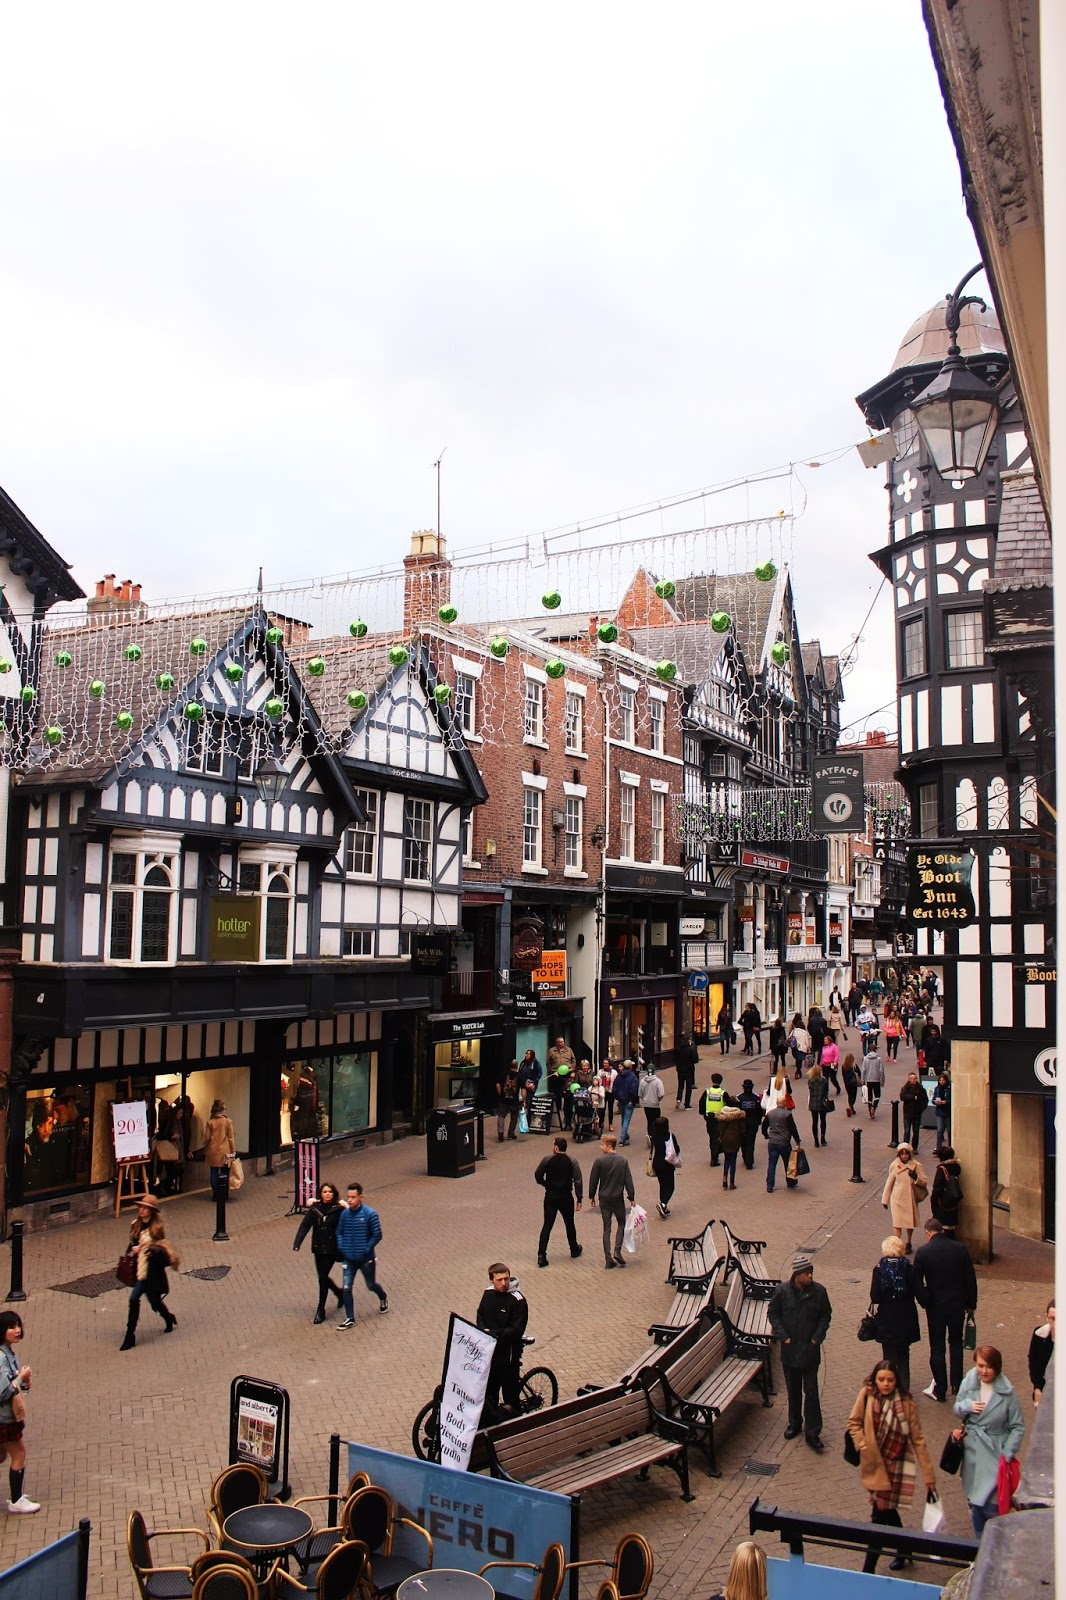 A Chester Travel Guide